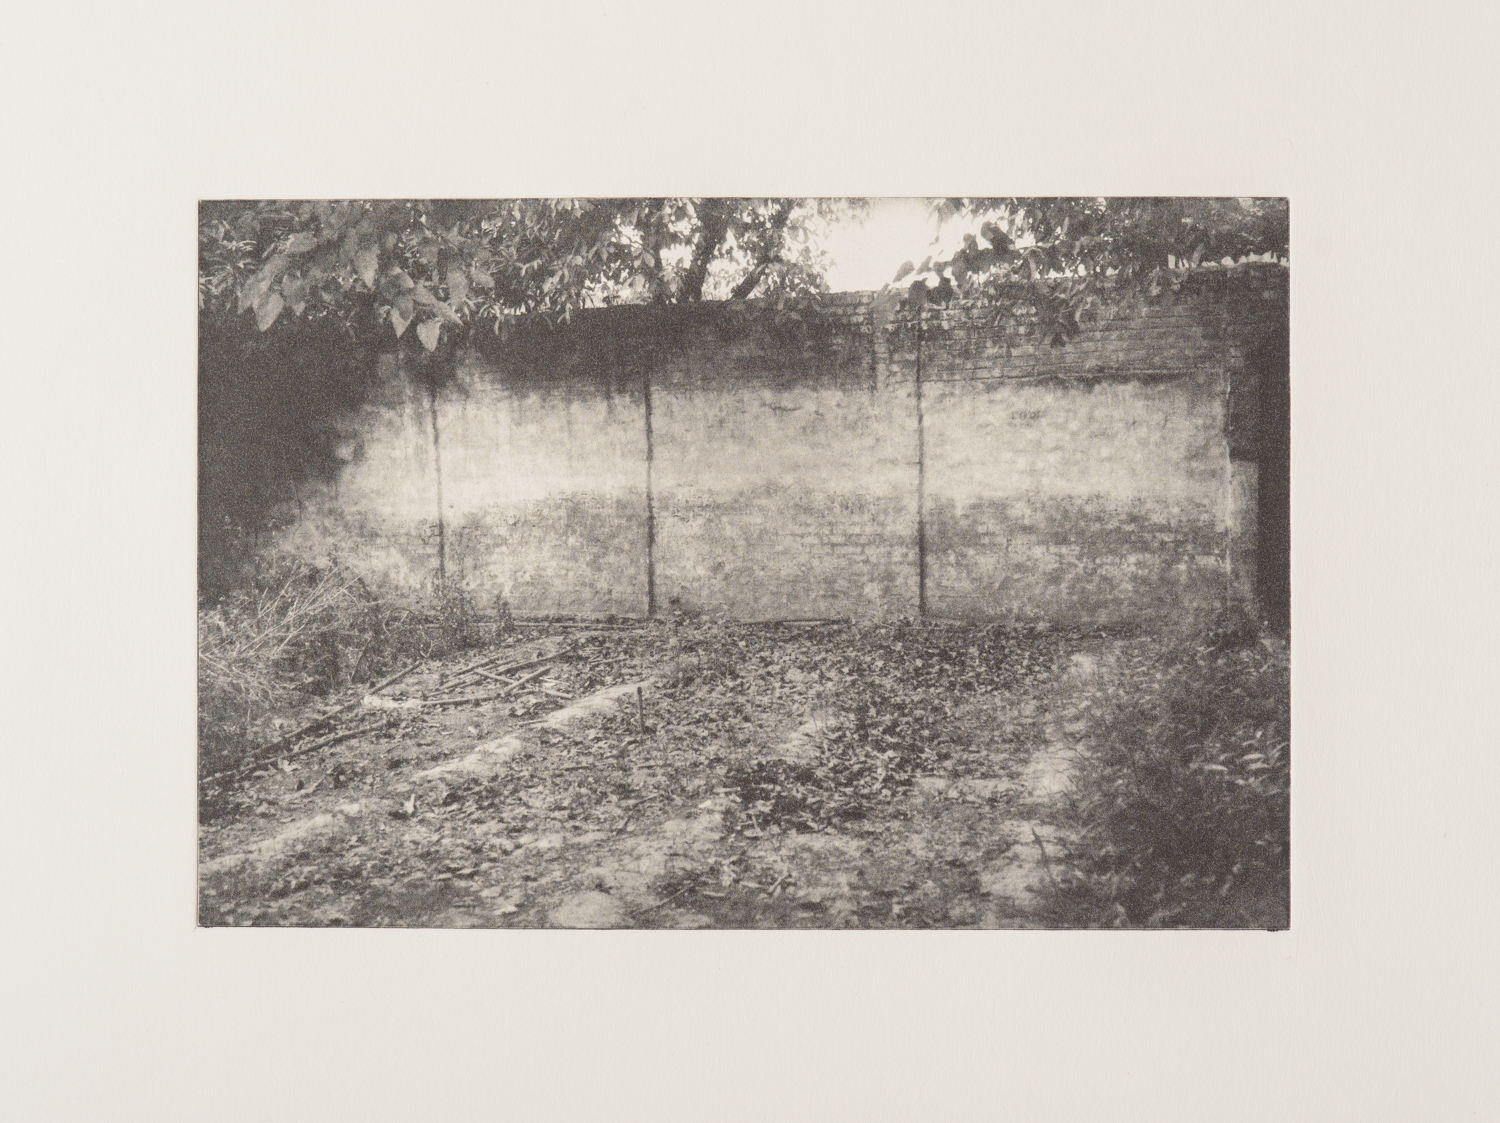 Finding Nowhere I   Photopolymer print on paper  23 x 30 cm  2016